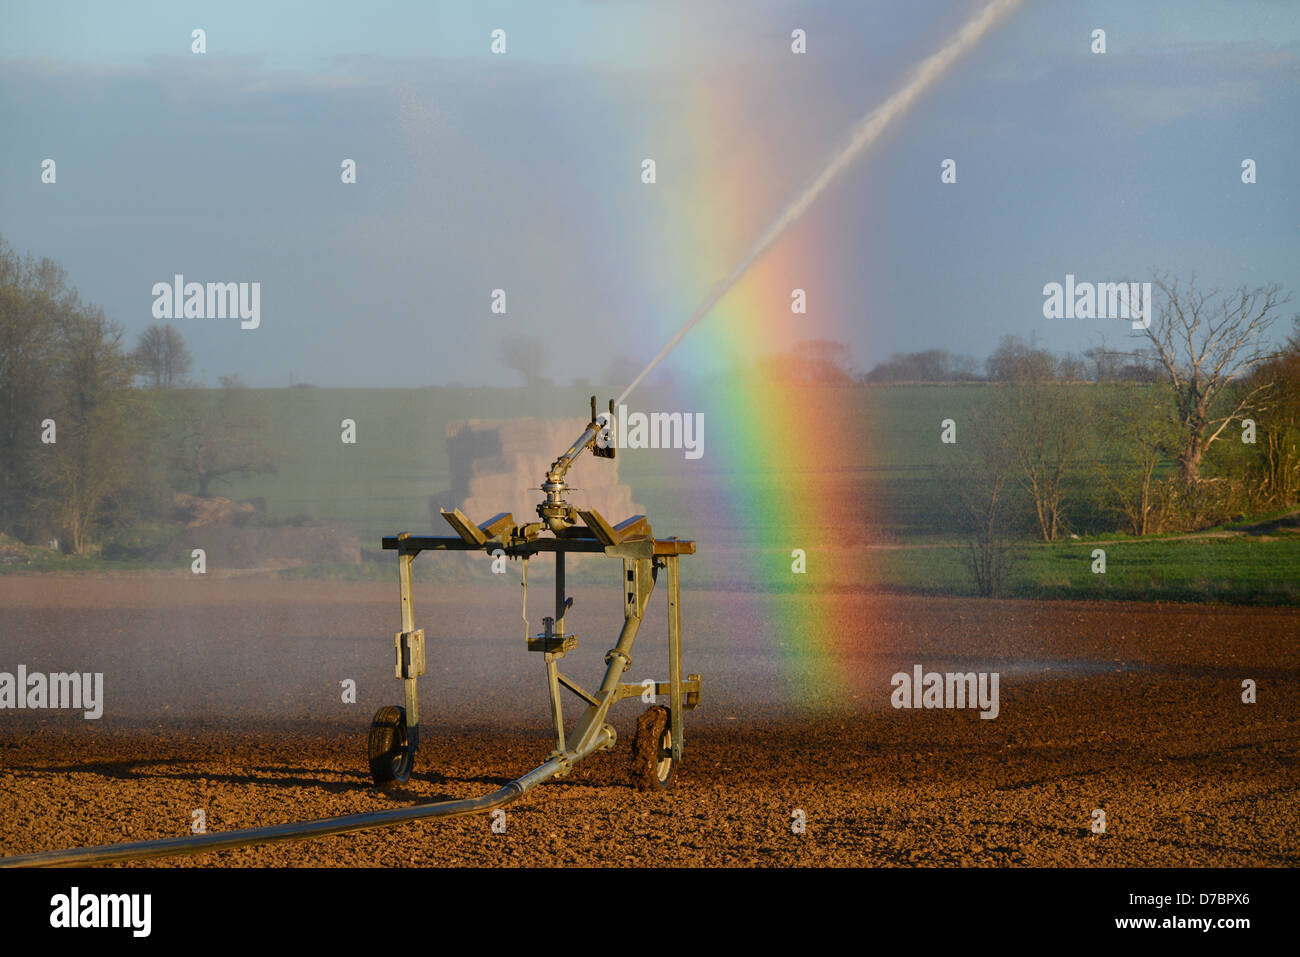 water cannon irrigating seeds in field during drought spell in hot summer south milford yorkshire uk - Stock Image